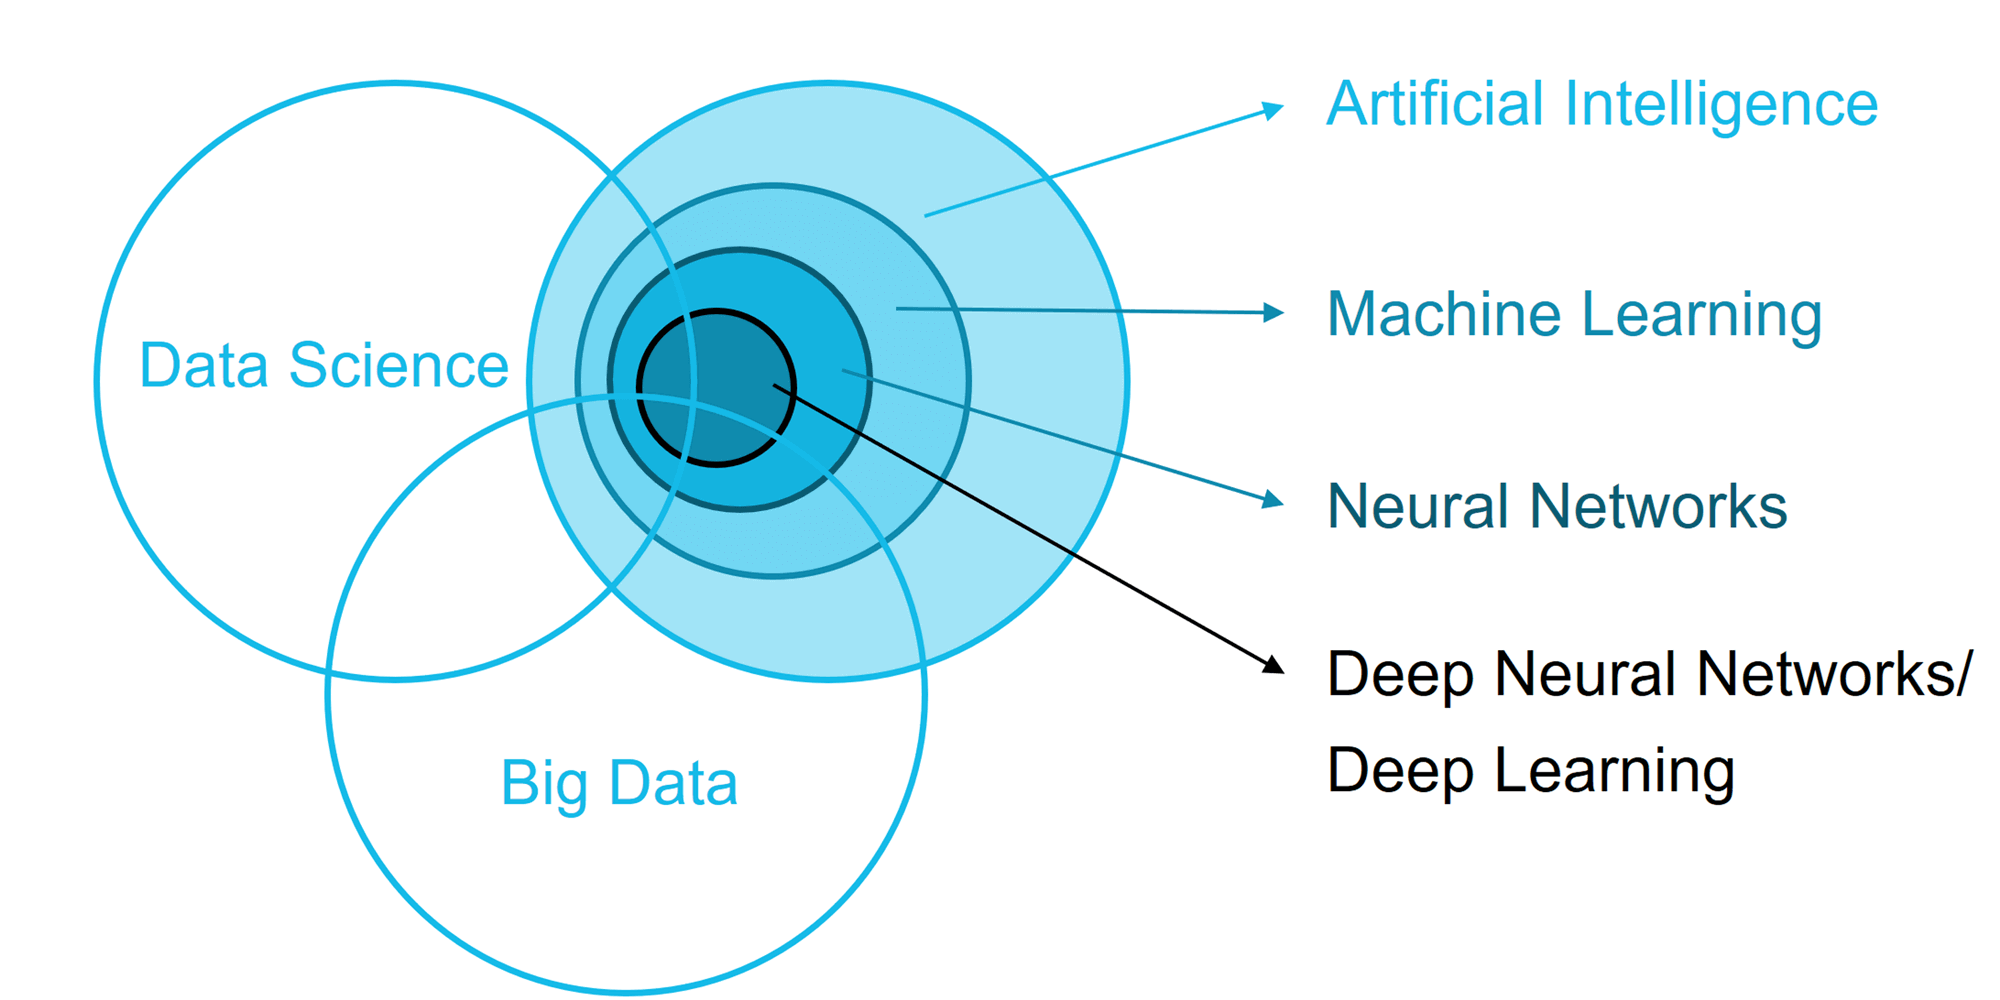 Artificial Intelligence vs. Machine Learning vs. Data Science